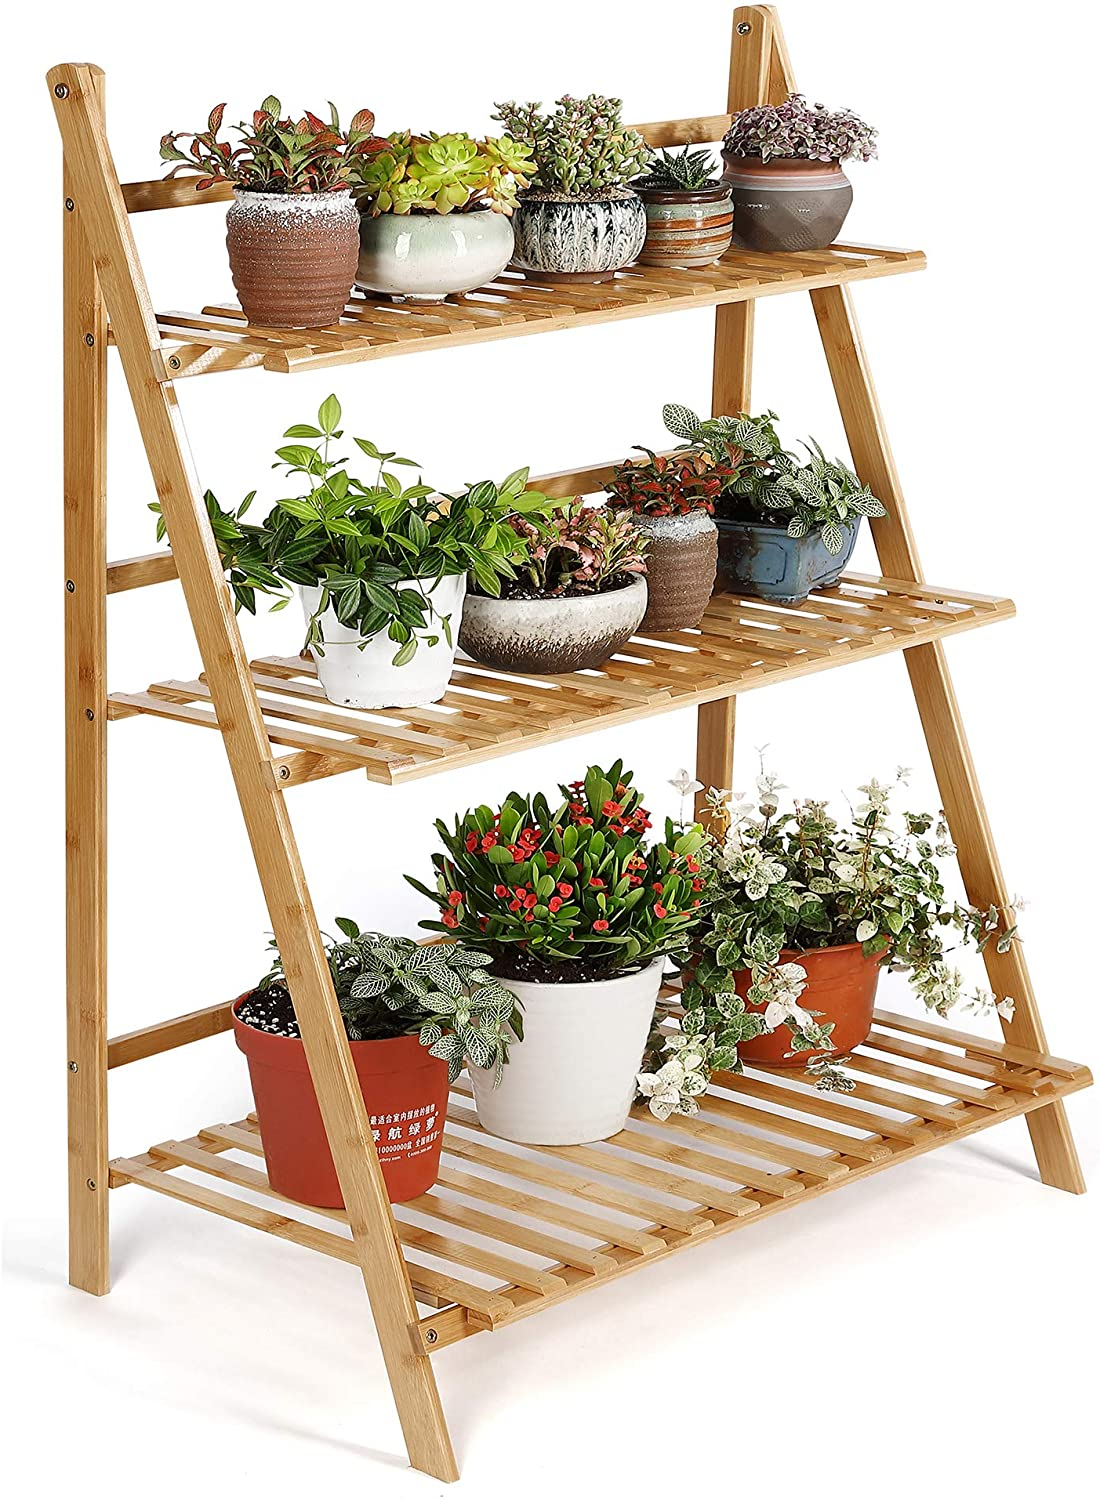 HYNAWIN Plant Stand 3 Tier Bamboo Flower Display Shelf Pot Display Storage Rack for Indoor Outdoor Home Patio Lawn Garden Balcony Organizer Planter Holder